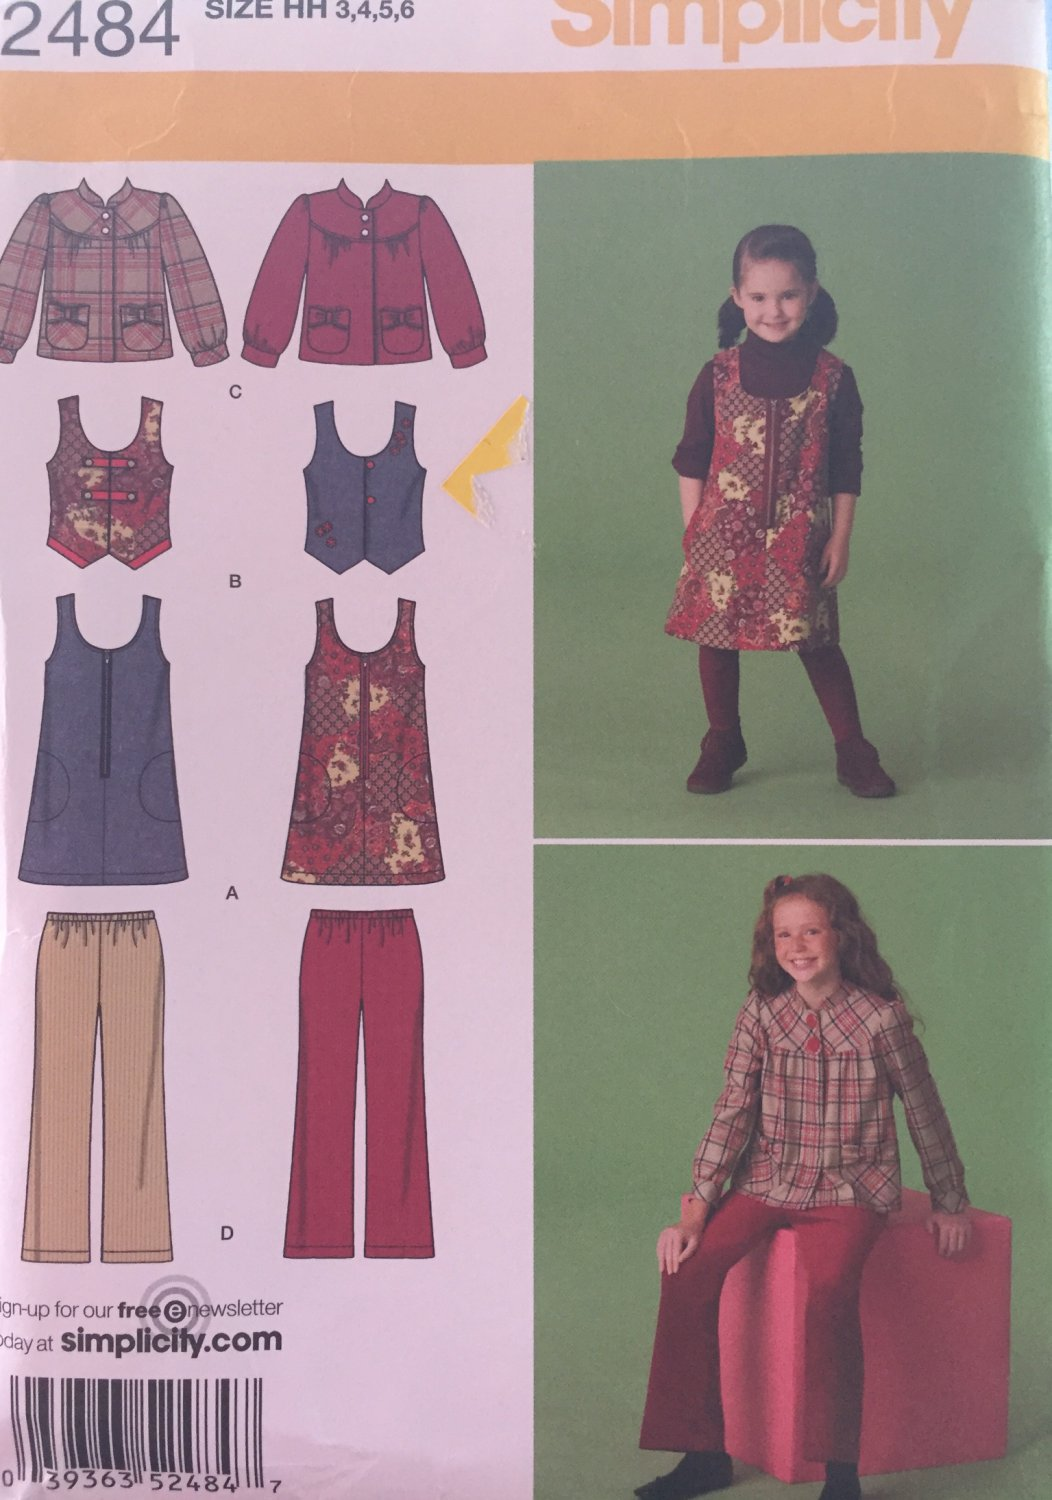 Simplicity 2484 Girls' Jumper, vest, jacket and cropped pant pattern Uncut Sizes 3, 4, 5 and 6